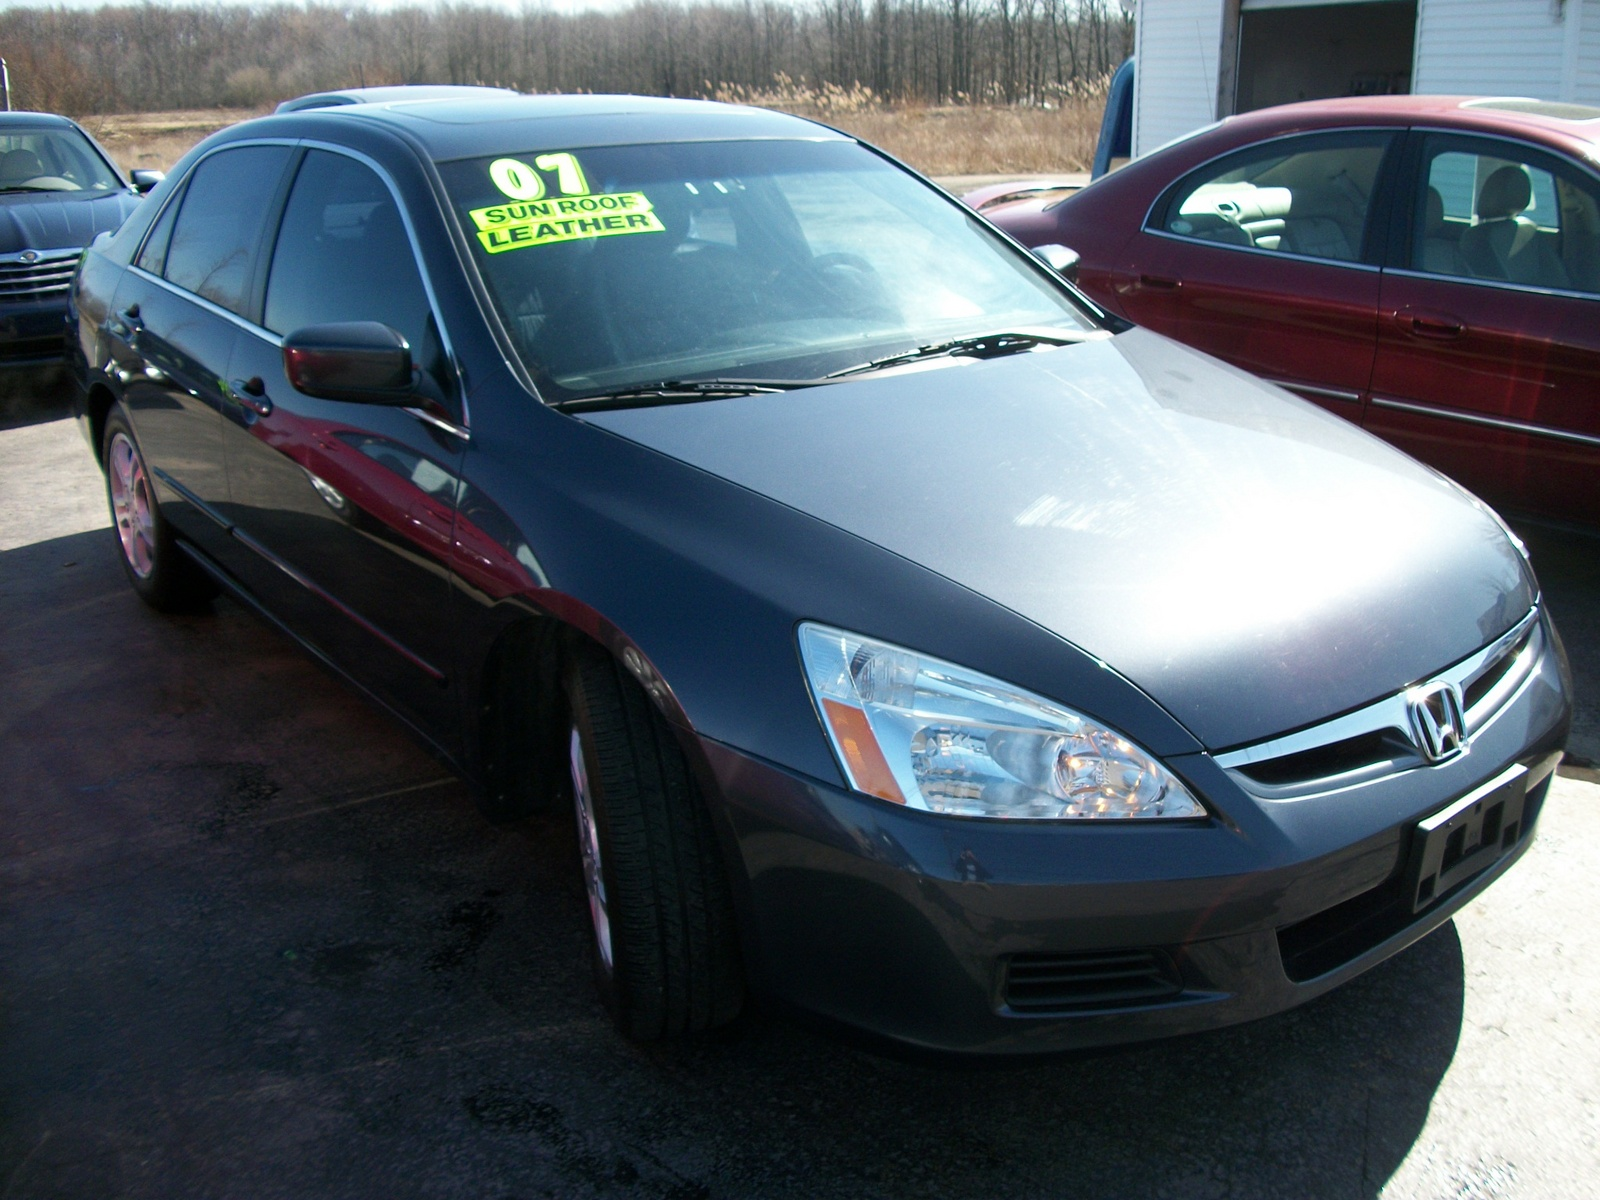 2008 Honda Accord EX-L - Pictures - 2008 Honda Accord EX-L picture ...